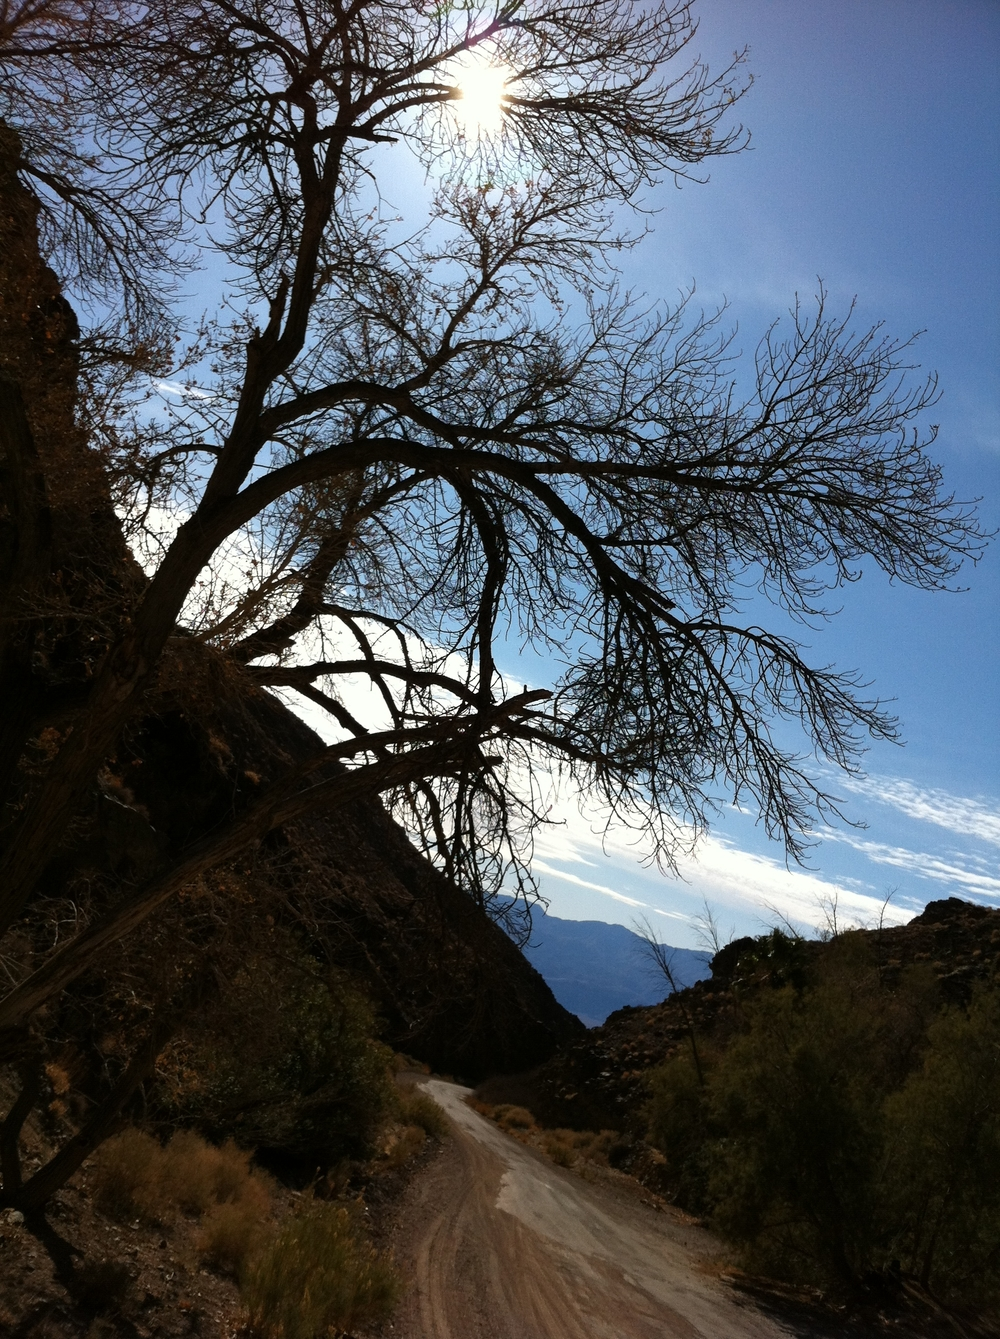 Wildrose Canyon Road, Death Valley